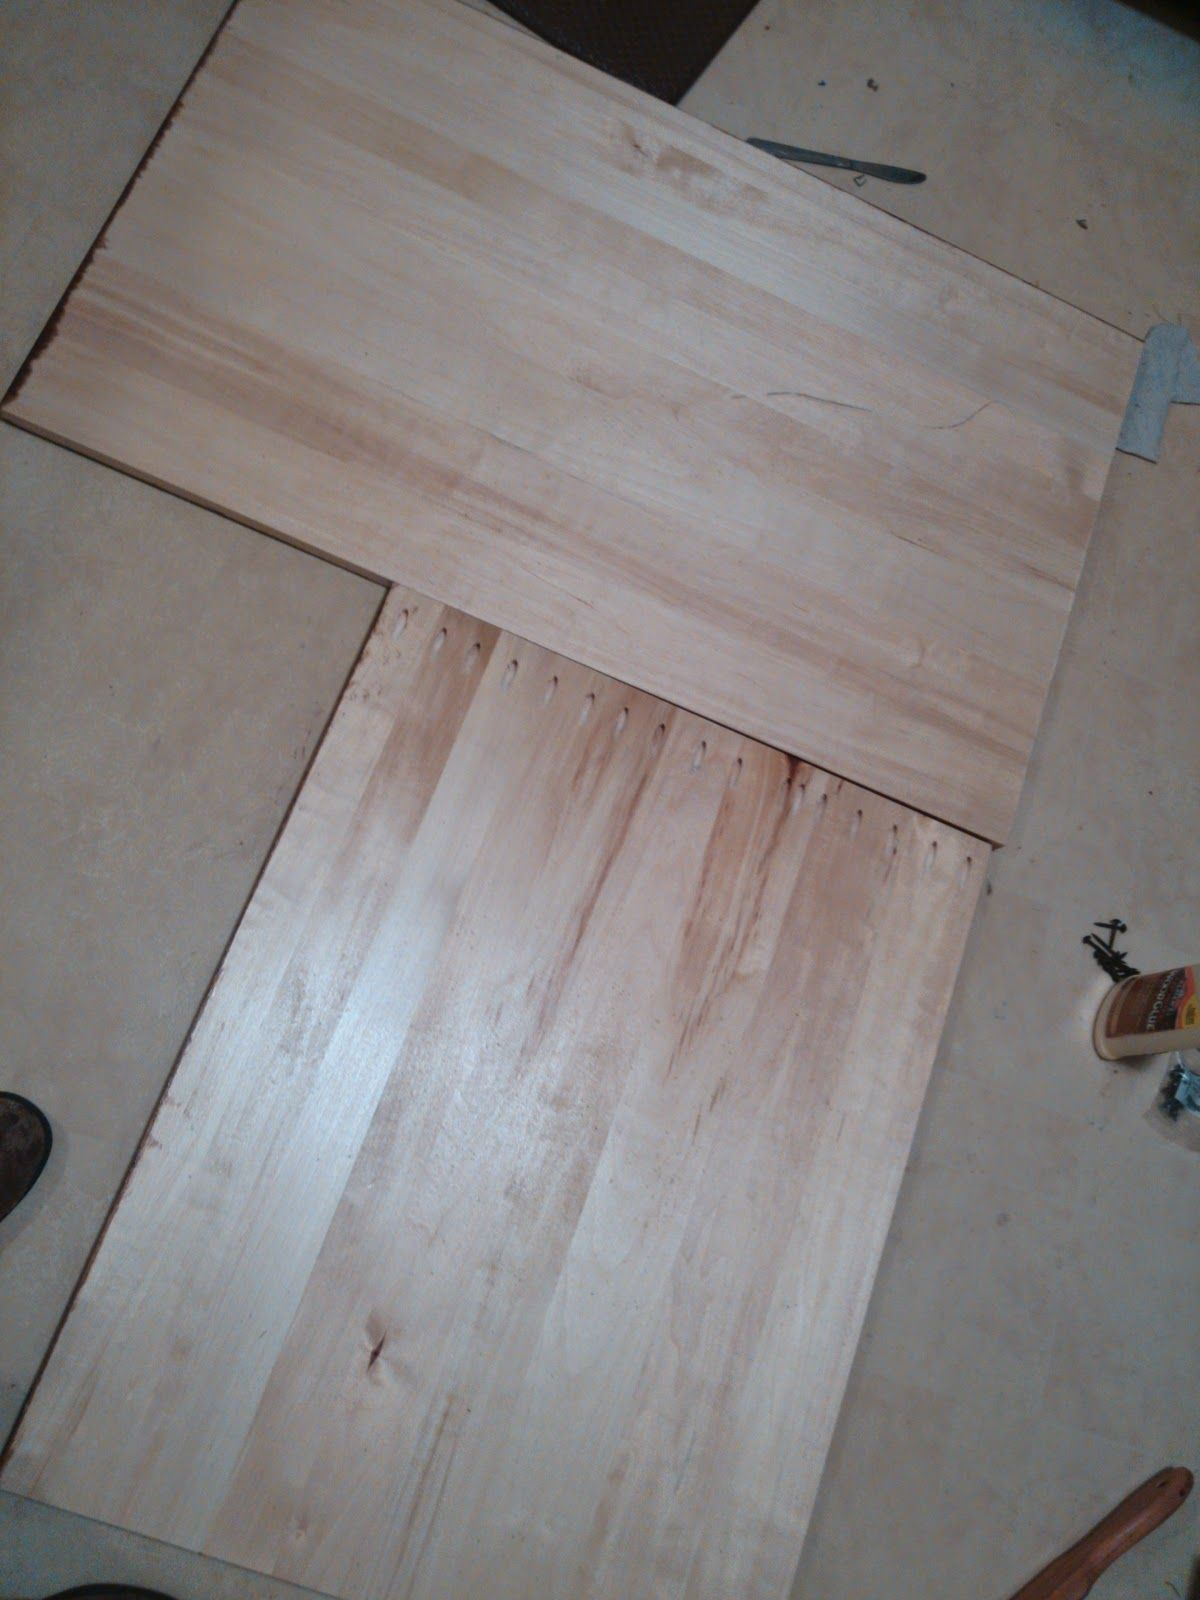 Joining 2 Pieces Of Countertop With Pocket Holes Diy Wood